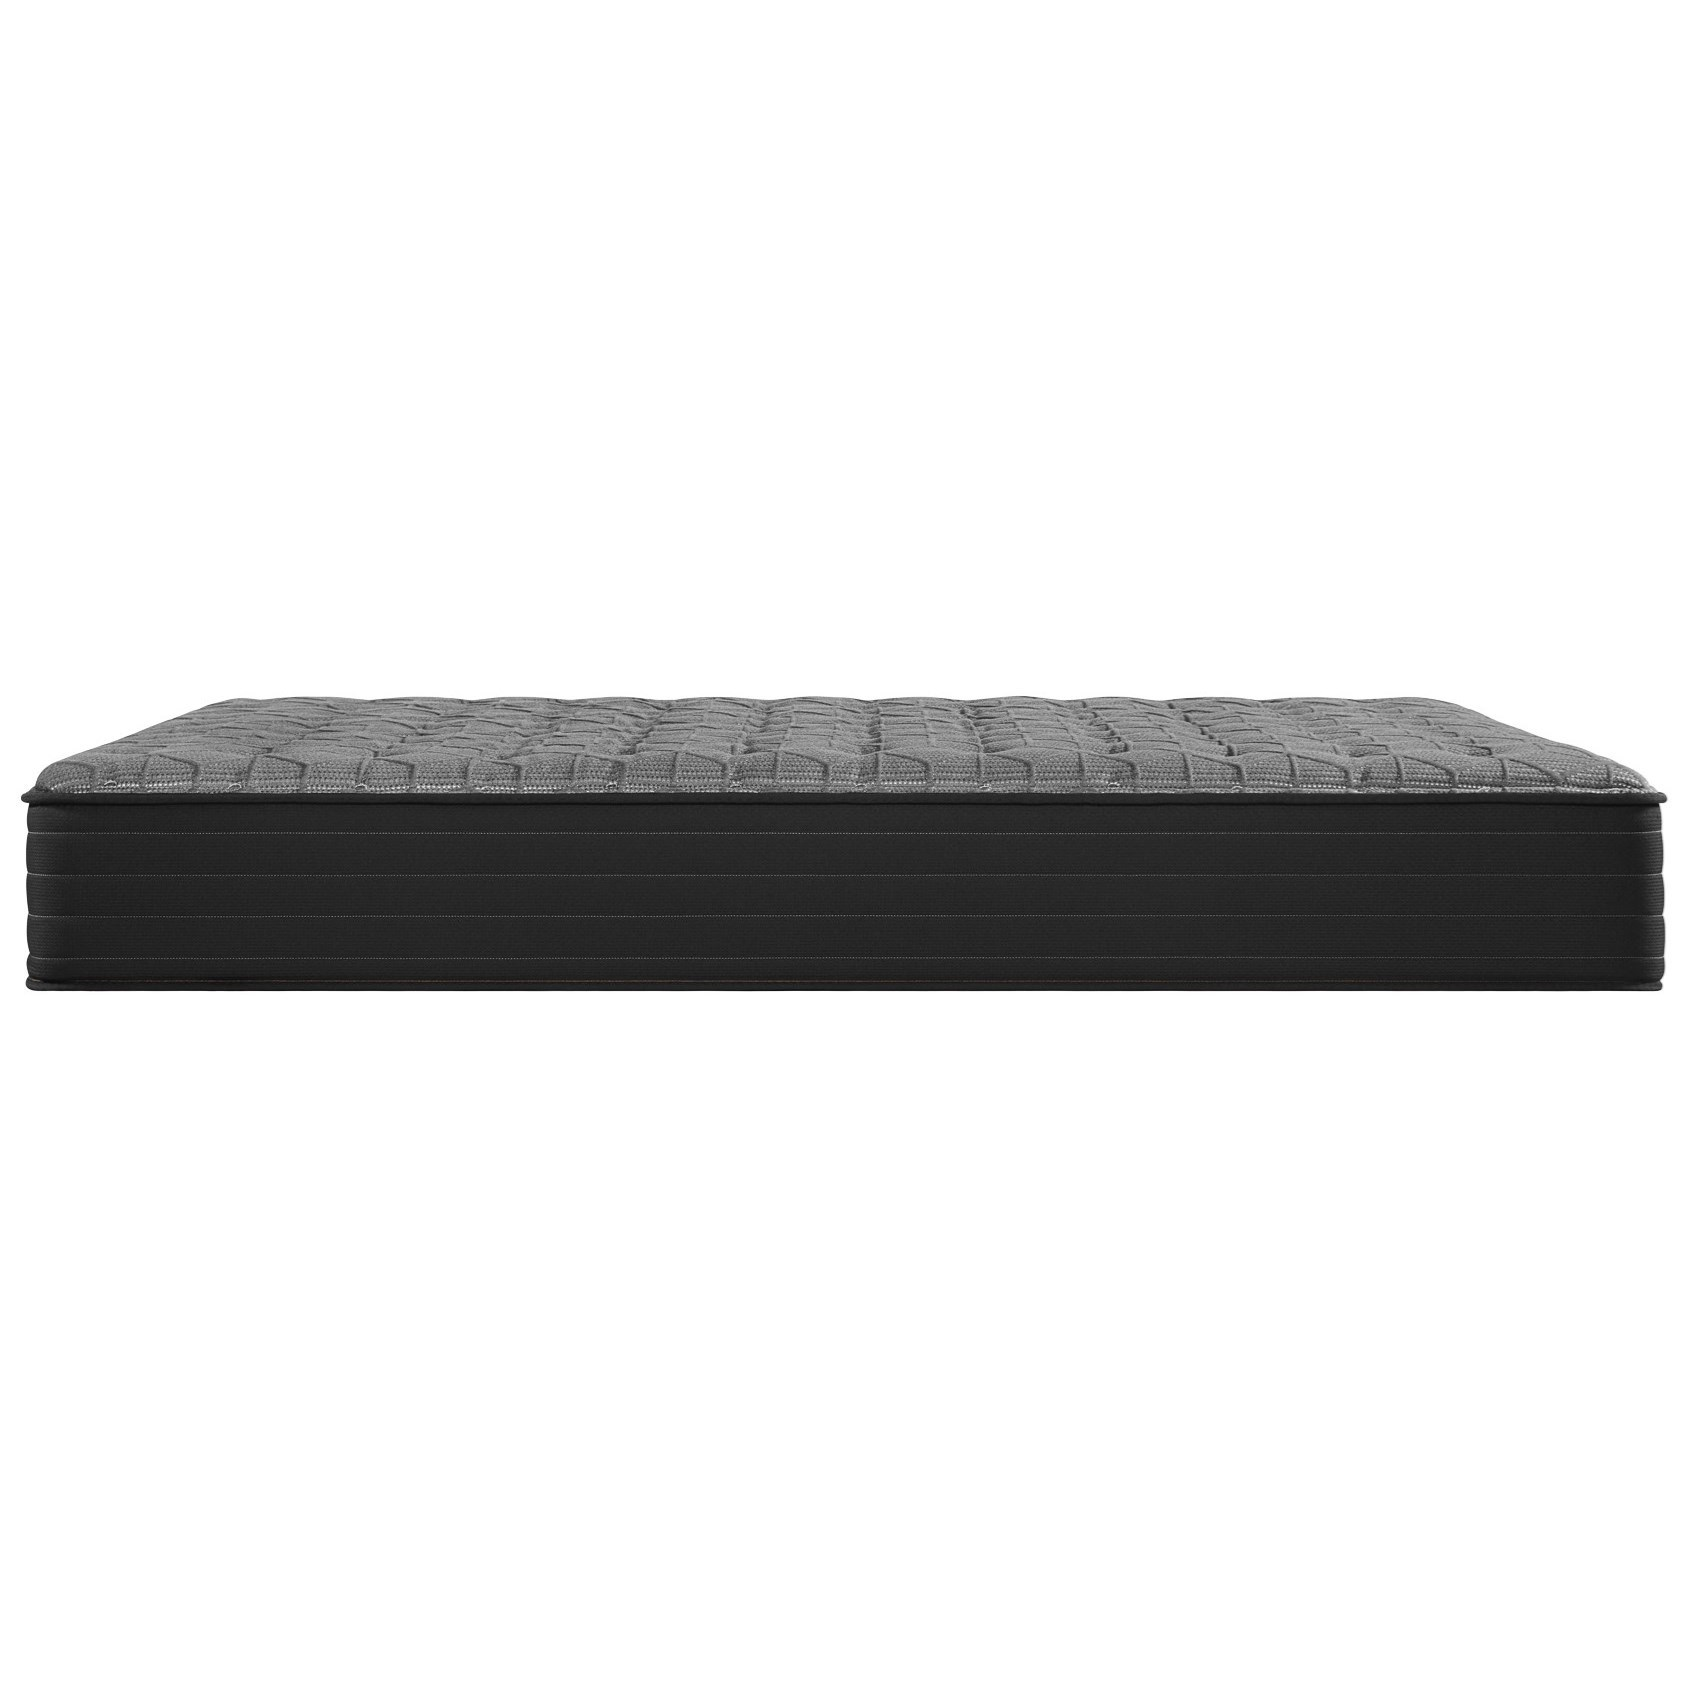 Beech Street Firm Queen Individually Wrapped Coil Mattress by Sealy at Suburban Furniture